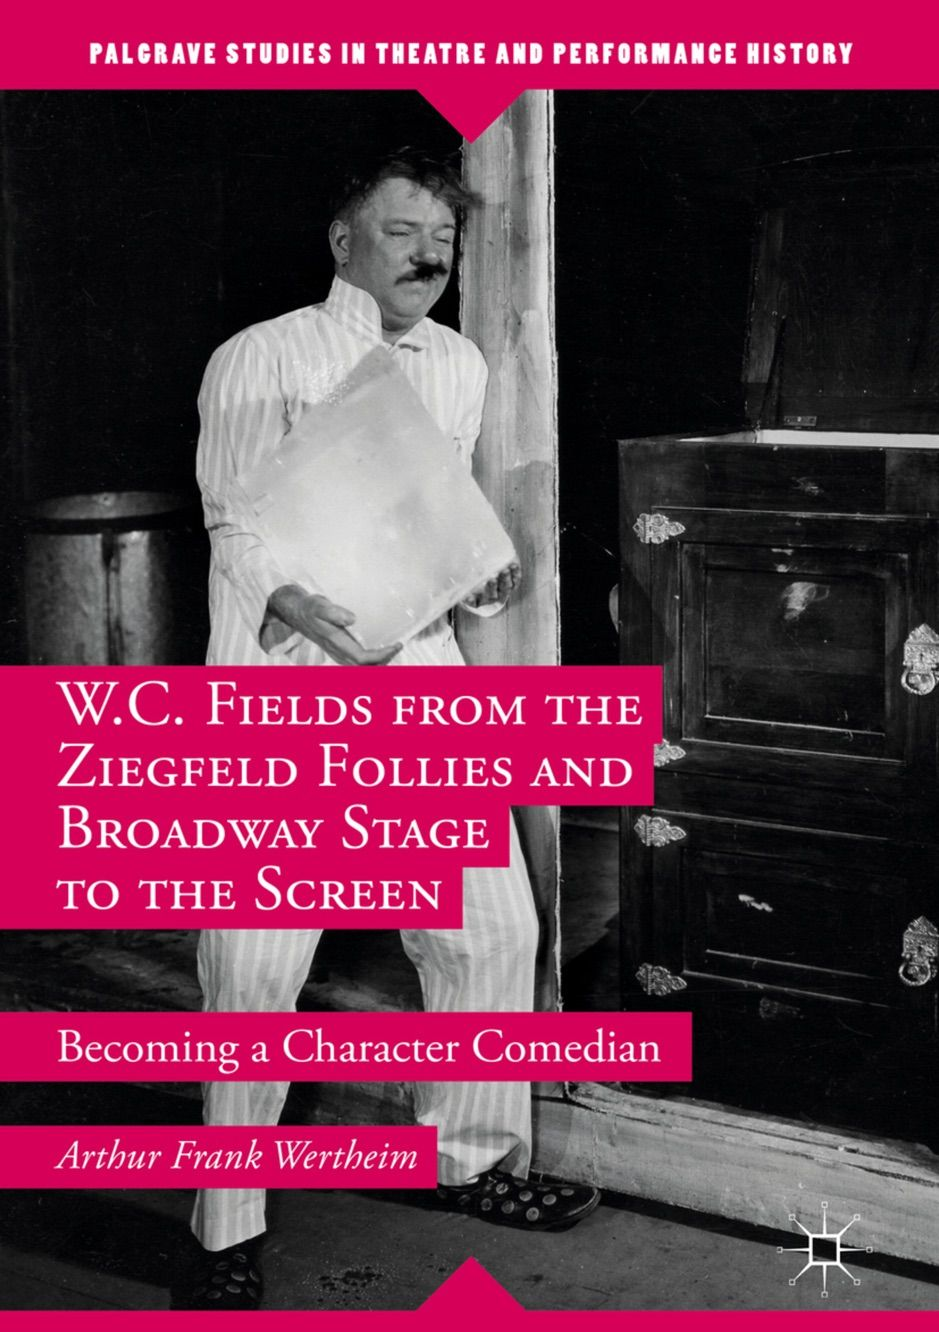 A Zw C Fields From The Ziegfeld Follies And Broadway Stage To The Screen Ad Follies Broadway Stage Downl Broadway Stage Ziegfeld Follies Comedians